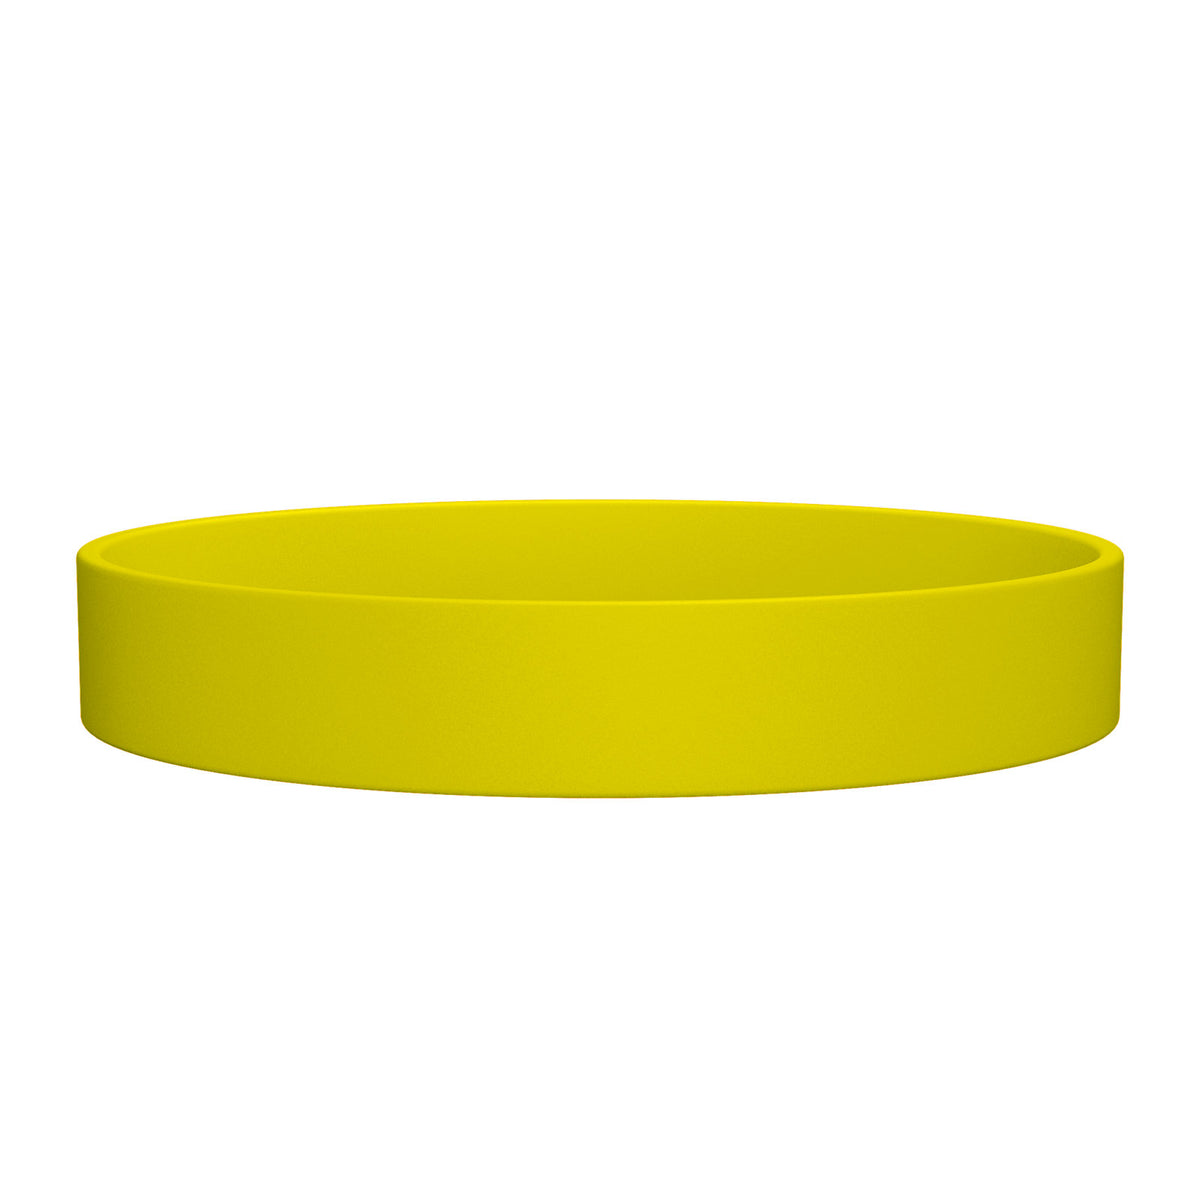 ROAD iD Wrist iD Replacement Stretch Band Yellow